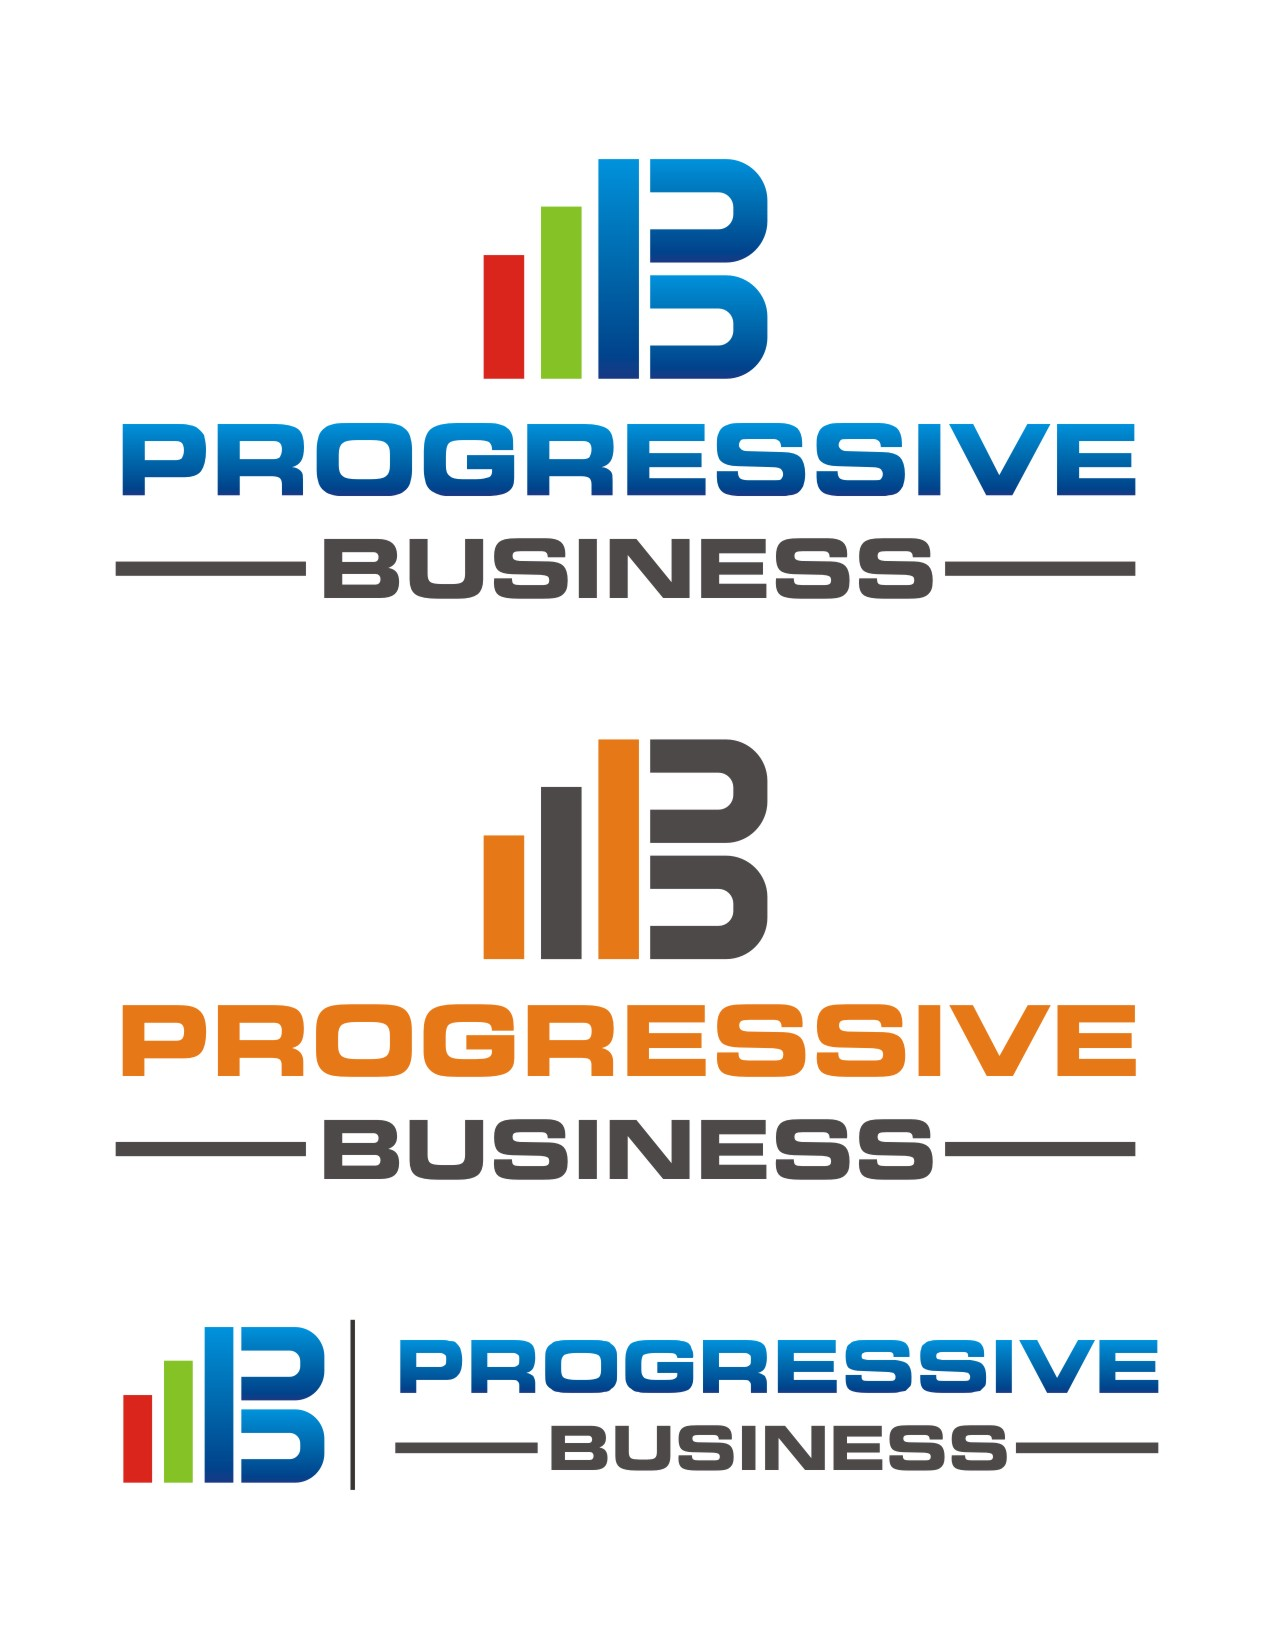 Logo Design by Spider Graphics - Entry No. 71 in the Logo Design Contest Captivating Logo Design for Progressive Business.